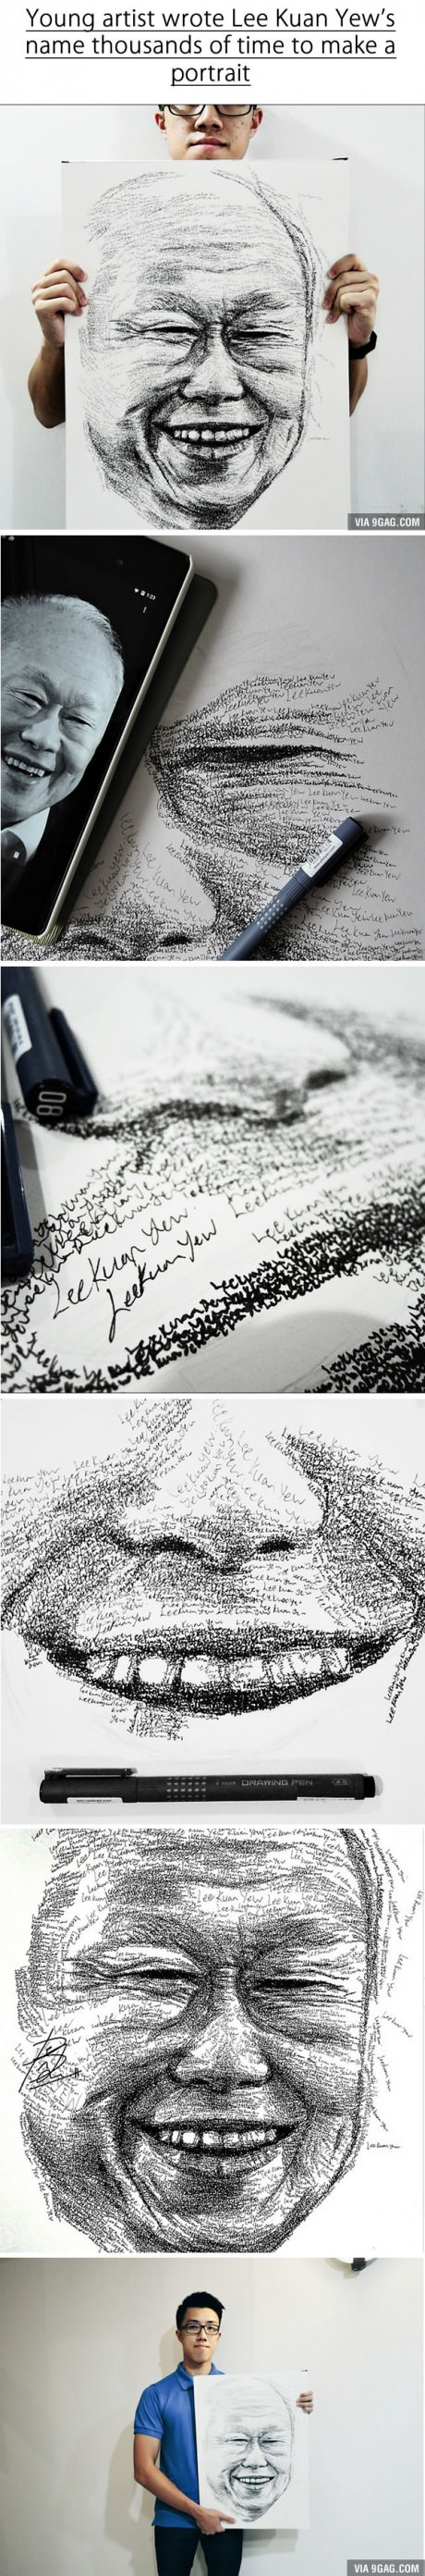 Aspiring Artist Creates Amazing Portrait Of Lee Kuan Yew By Writing His Name 18 000 Times R I P Mr Lee Aspiring Artist Lee Kuan Yew Portrait